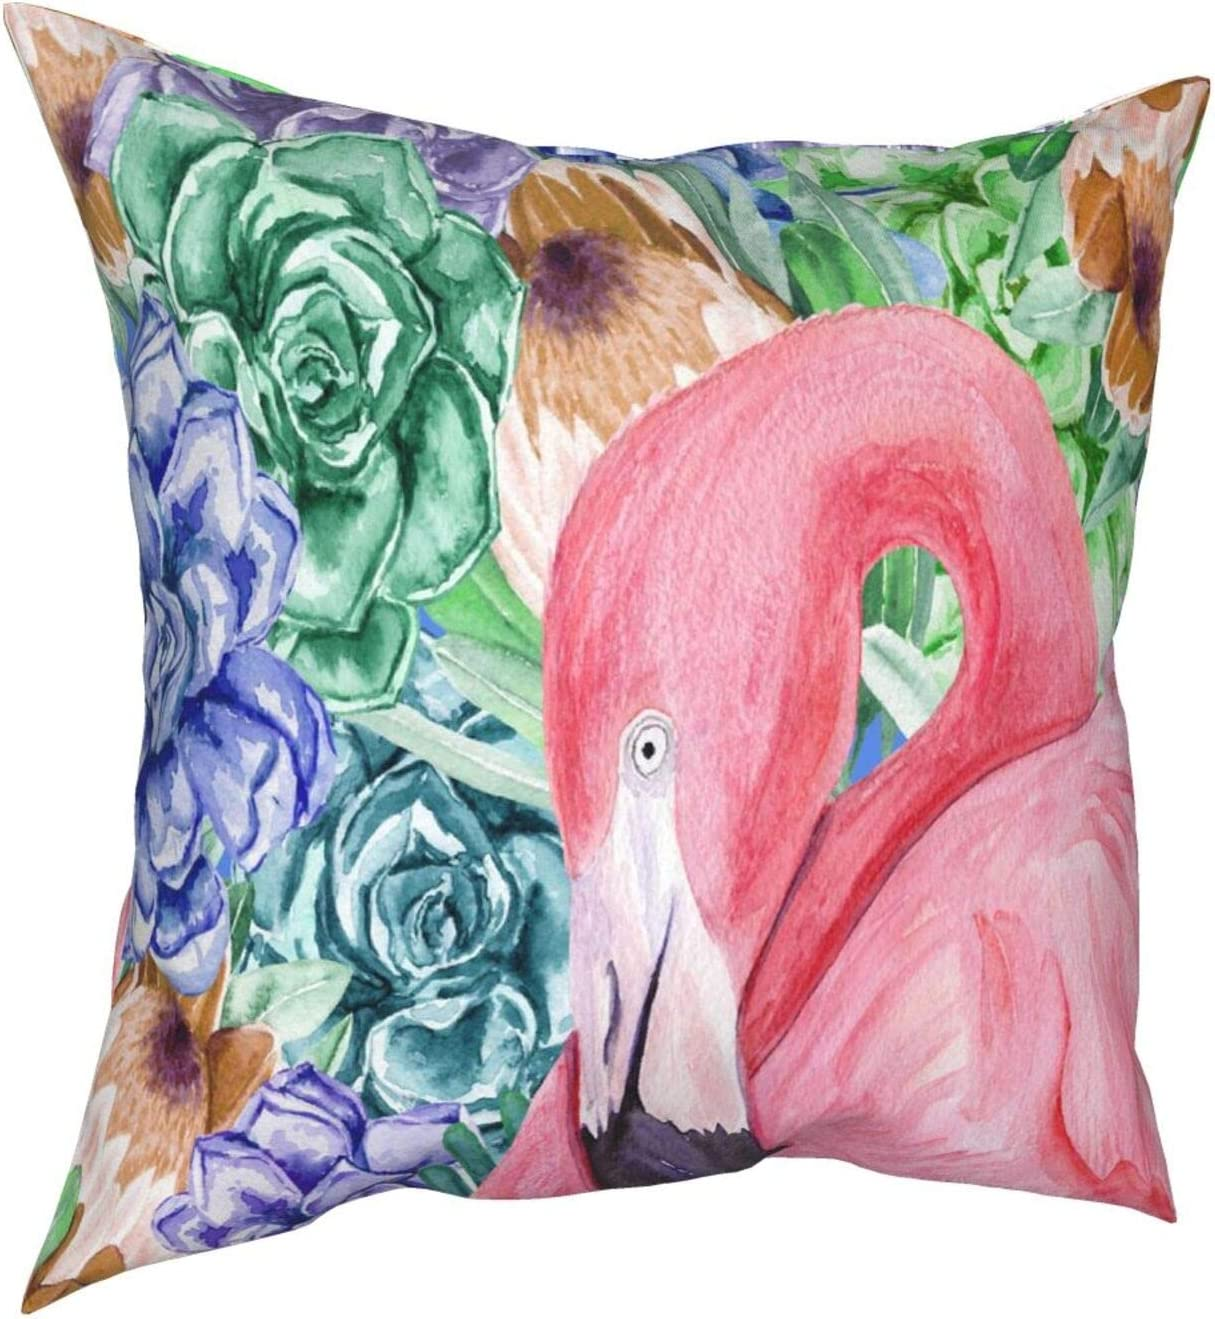 BEVRRY Throw Pillow Covers 20x20, Modern Decorative Throw Pillow Case Cushion Case for Room Bedroom Room Sofa Chair Car, Body Pillow Cover-Tropical Watercolor Flamingo